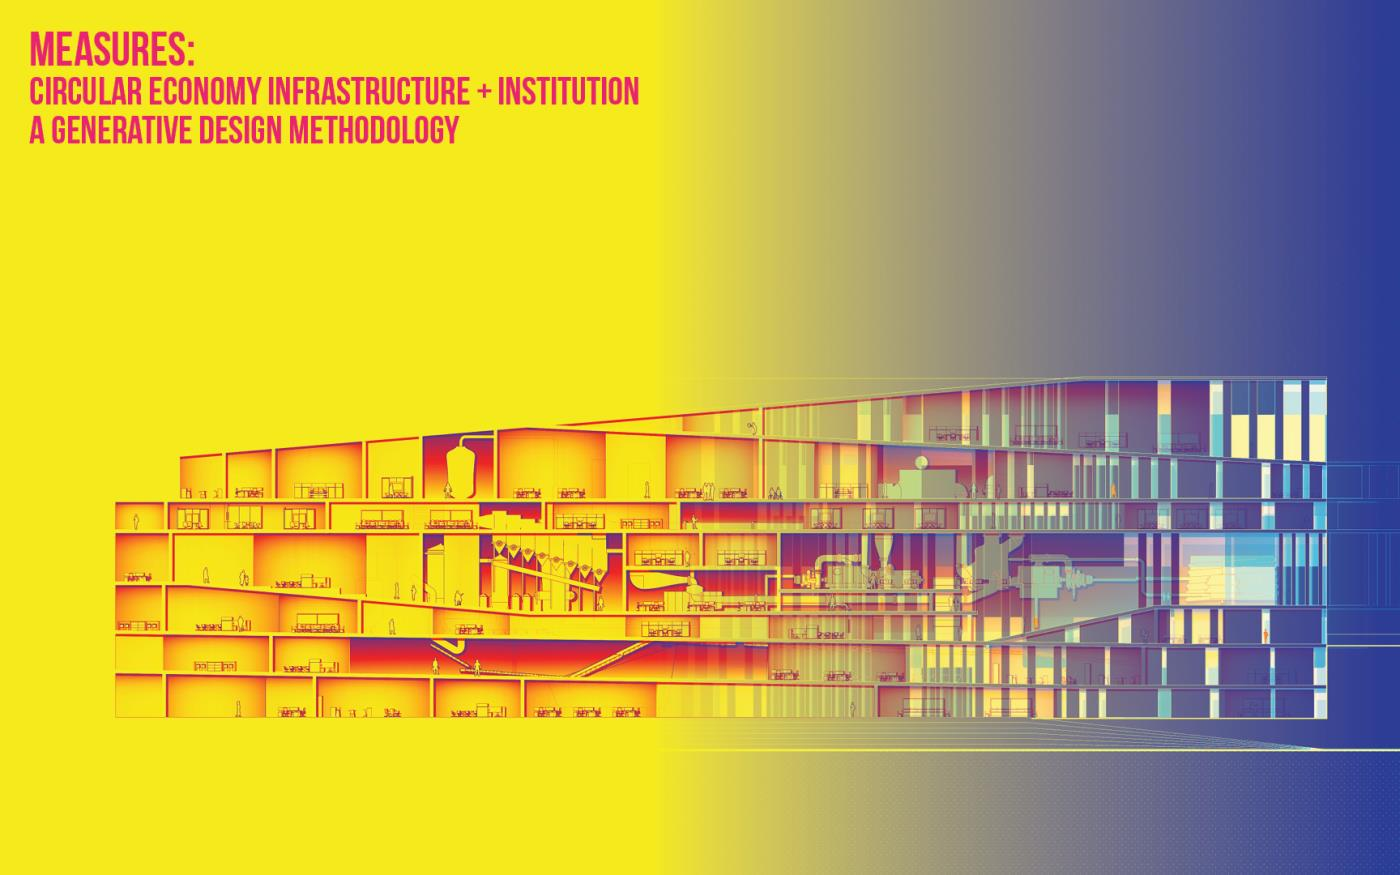 Measures: Circular Economy Infrastructure + Institution A Generative Design Methodology